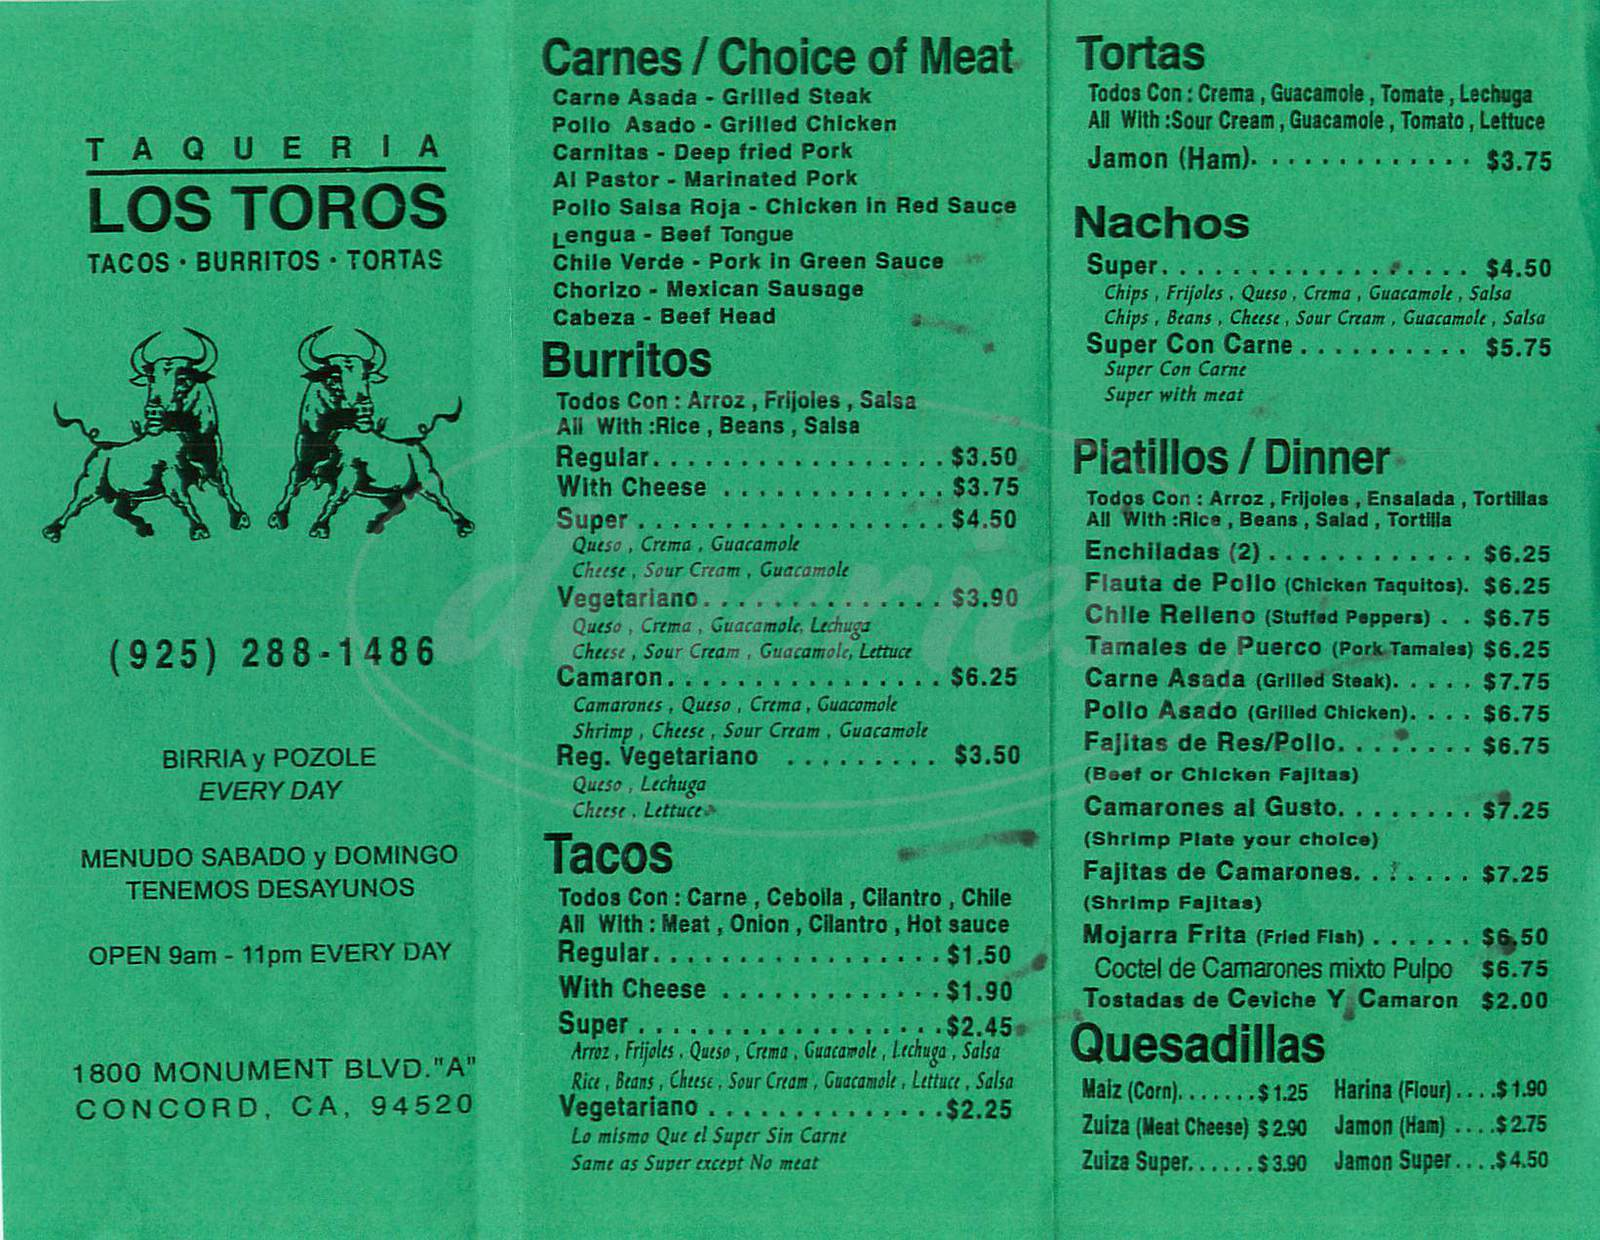 menu for Taqueria Los Toros